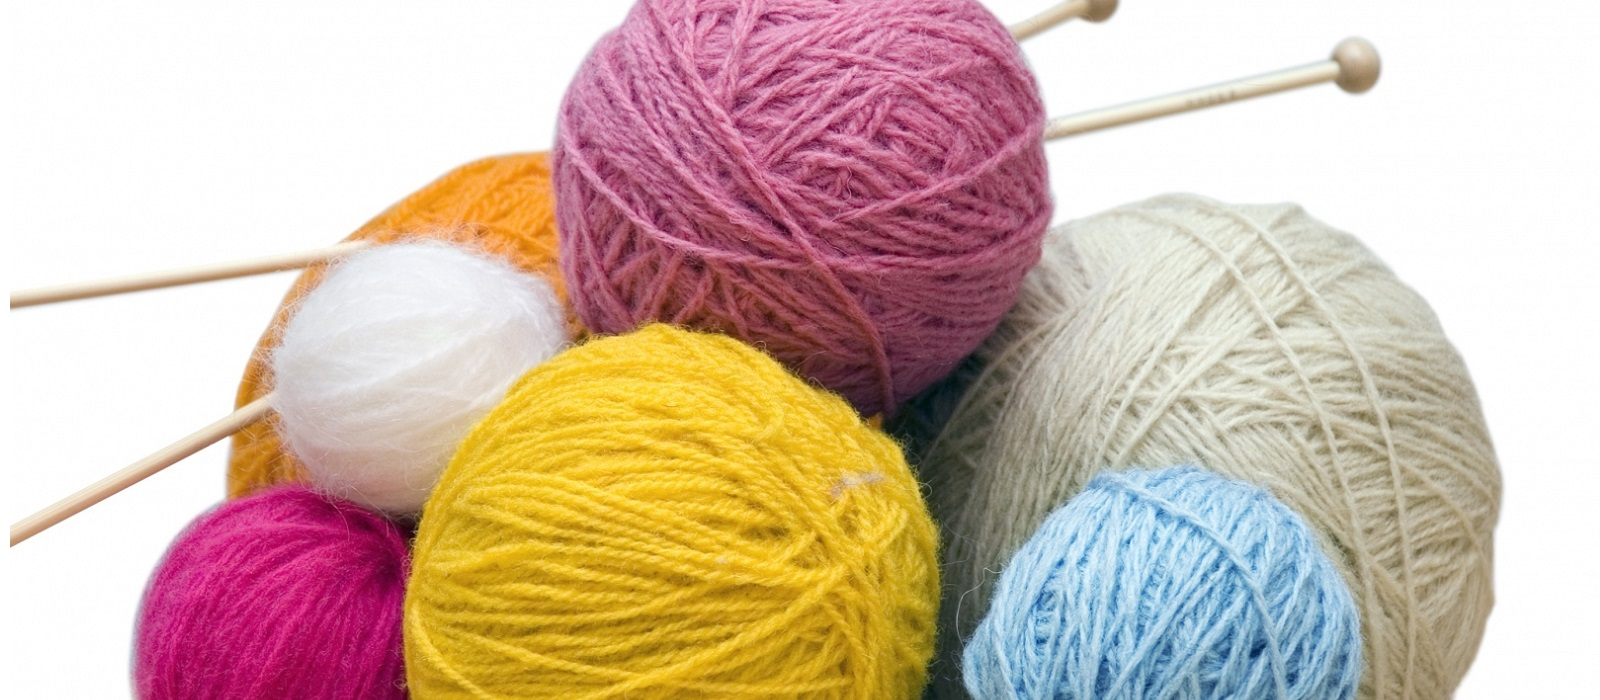 Copy of Copy of yarn balls